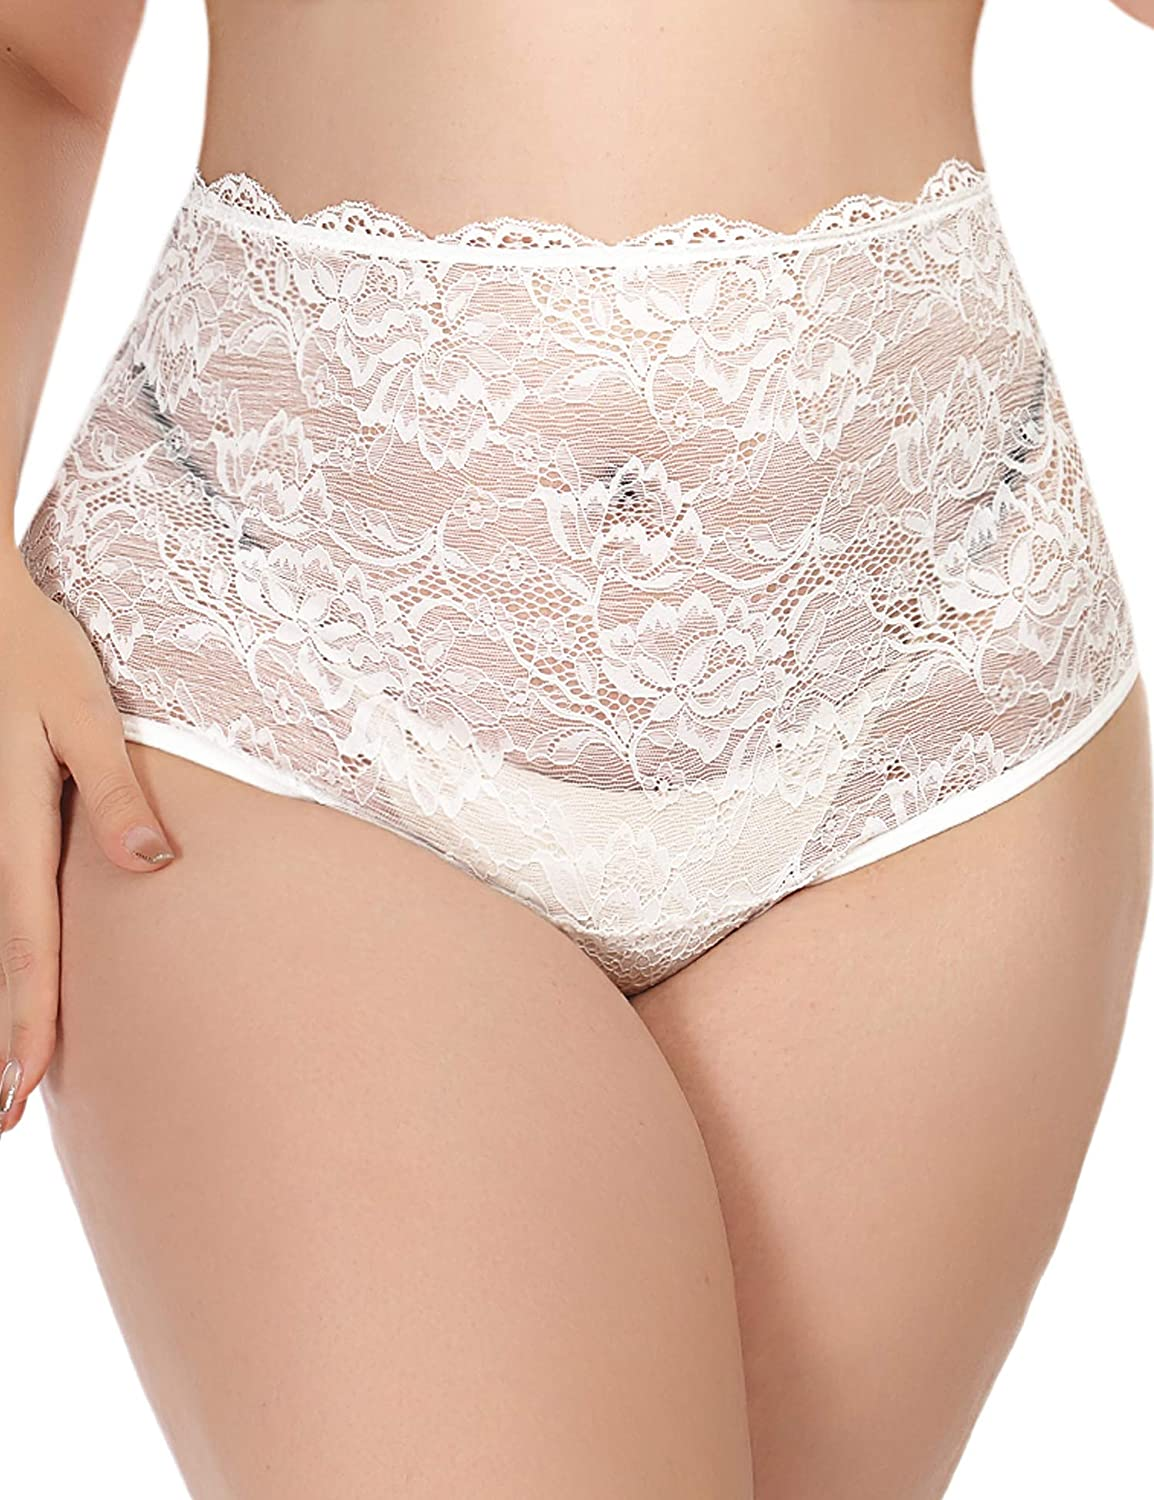 Avidlove Womens Underwear Invisible Seamless Hipster Lace Underwear Full Coverage Panties